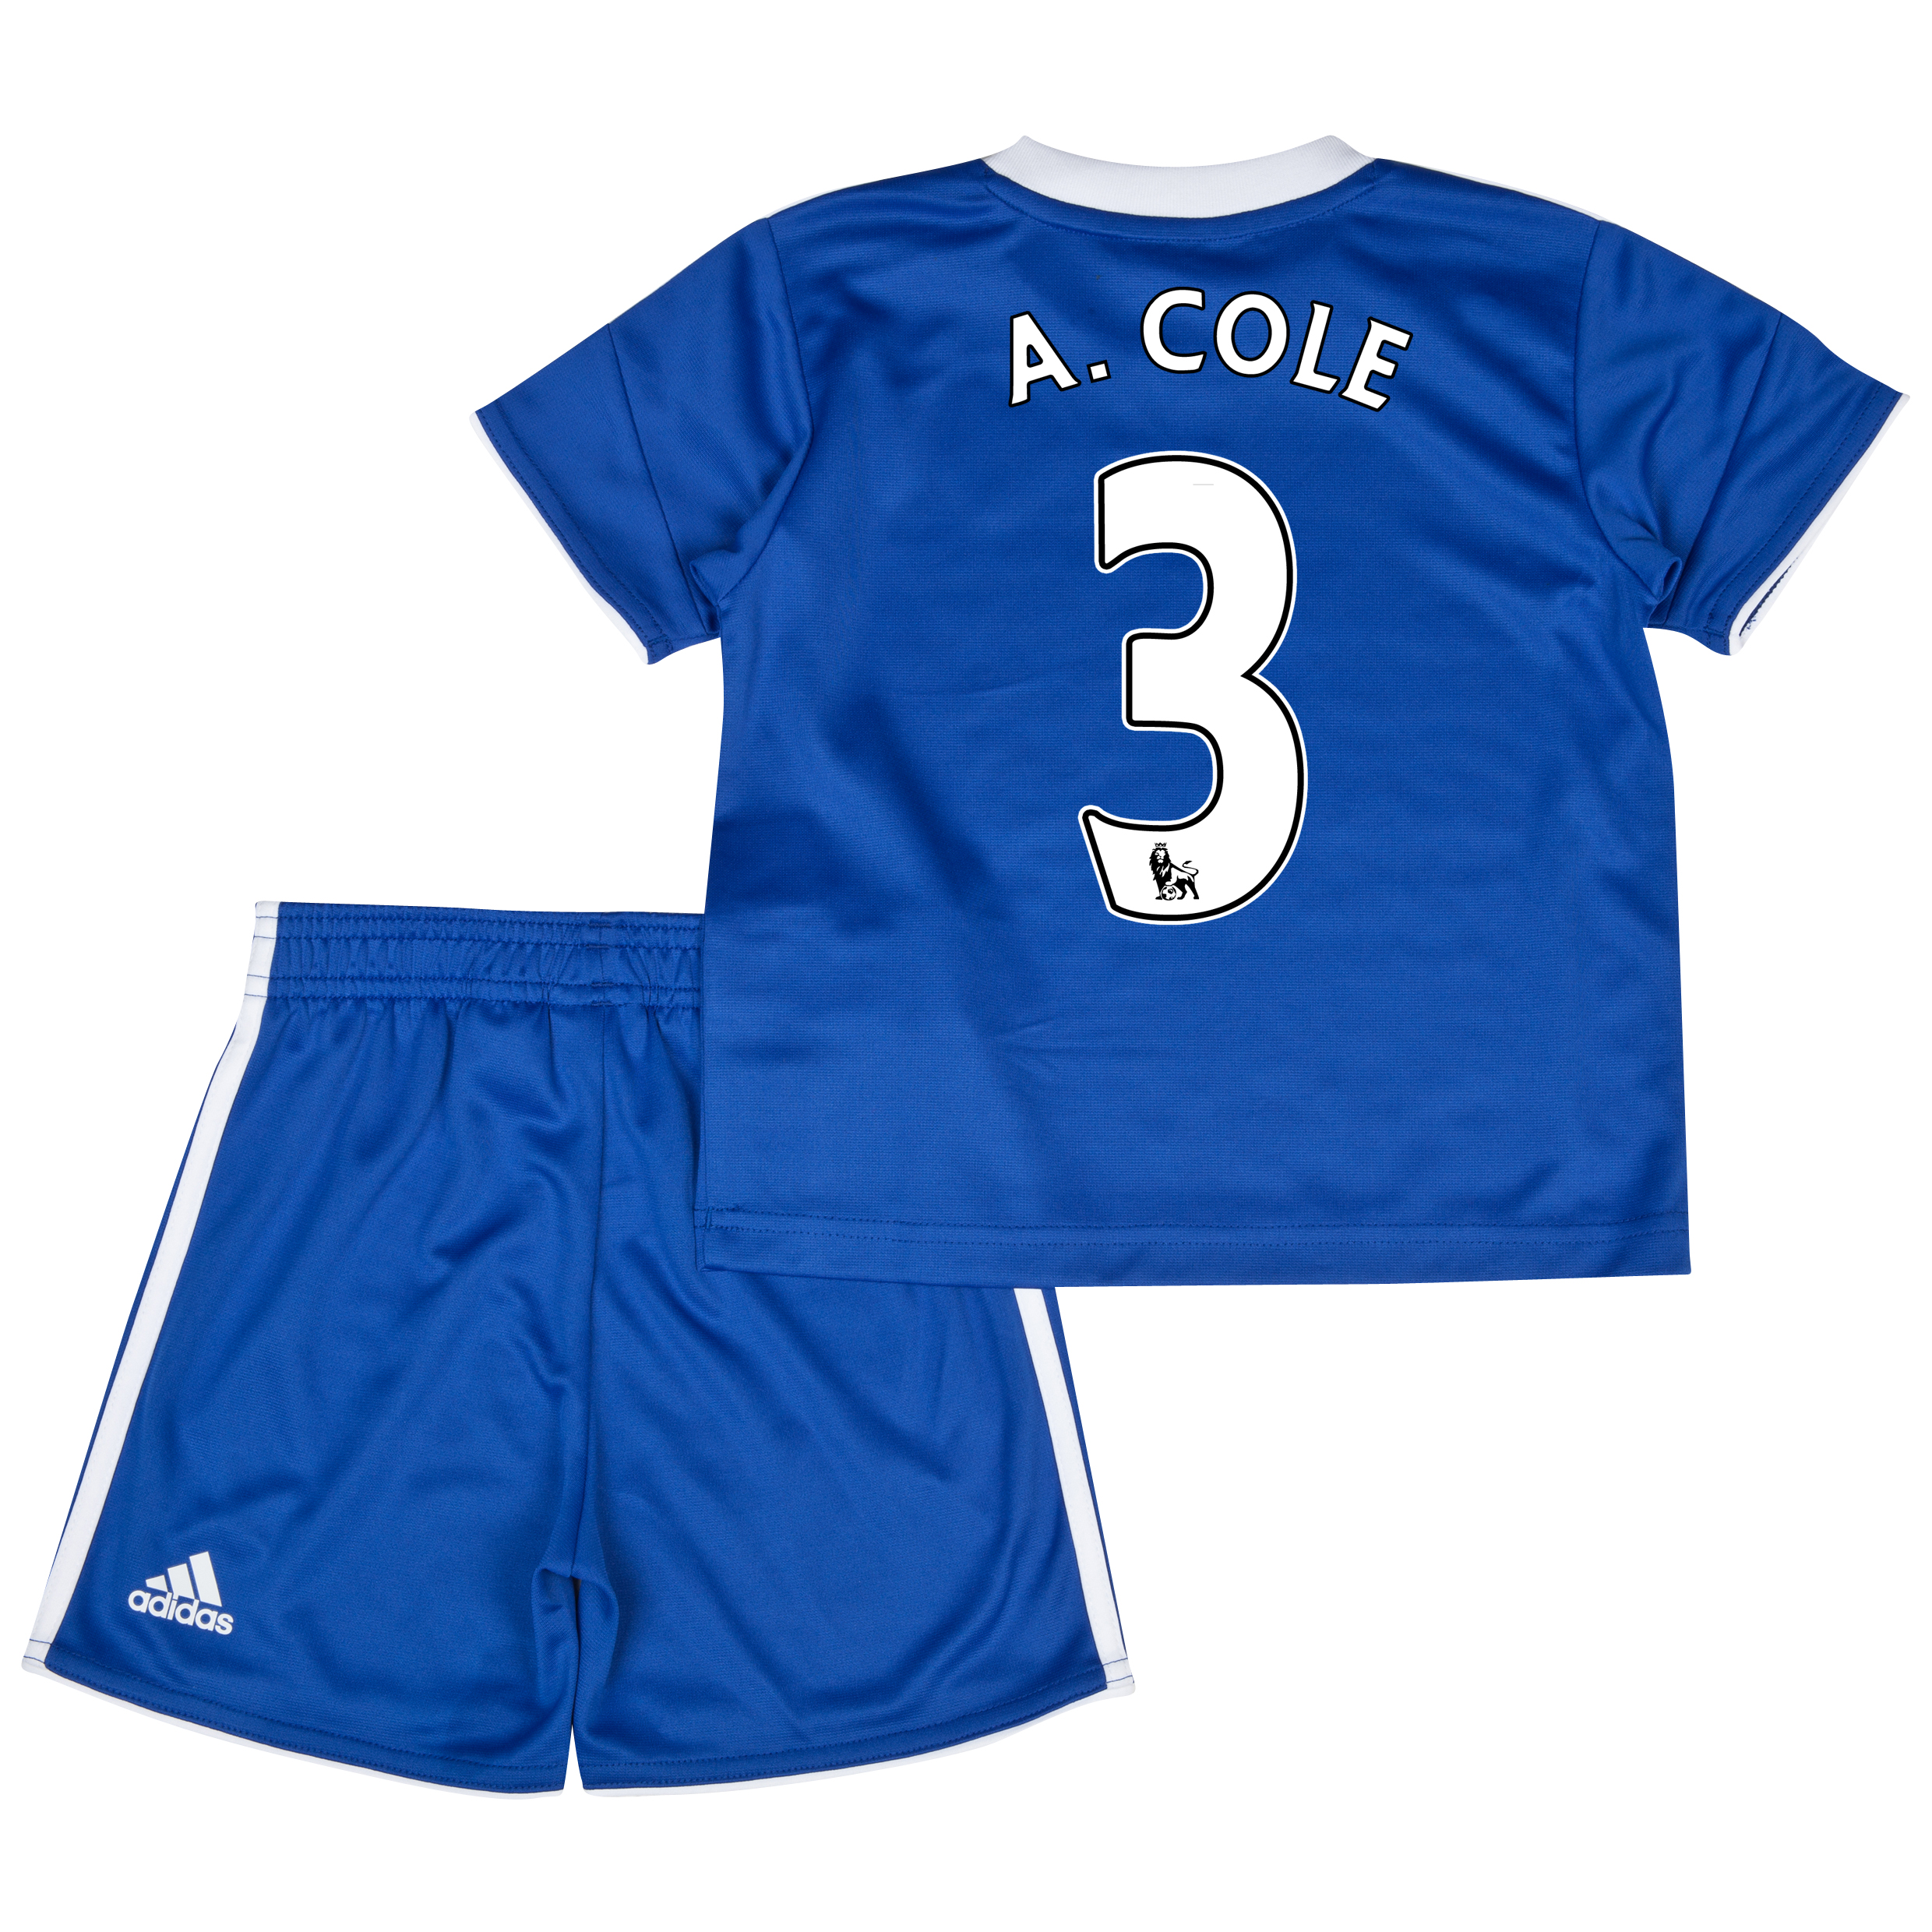 Chelsea Home Mini Kit 2013/14 with A.Cole 3 printing